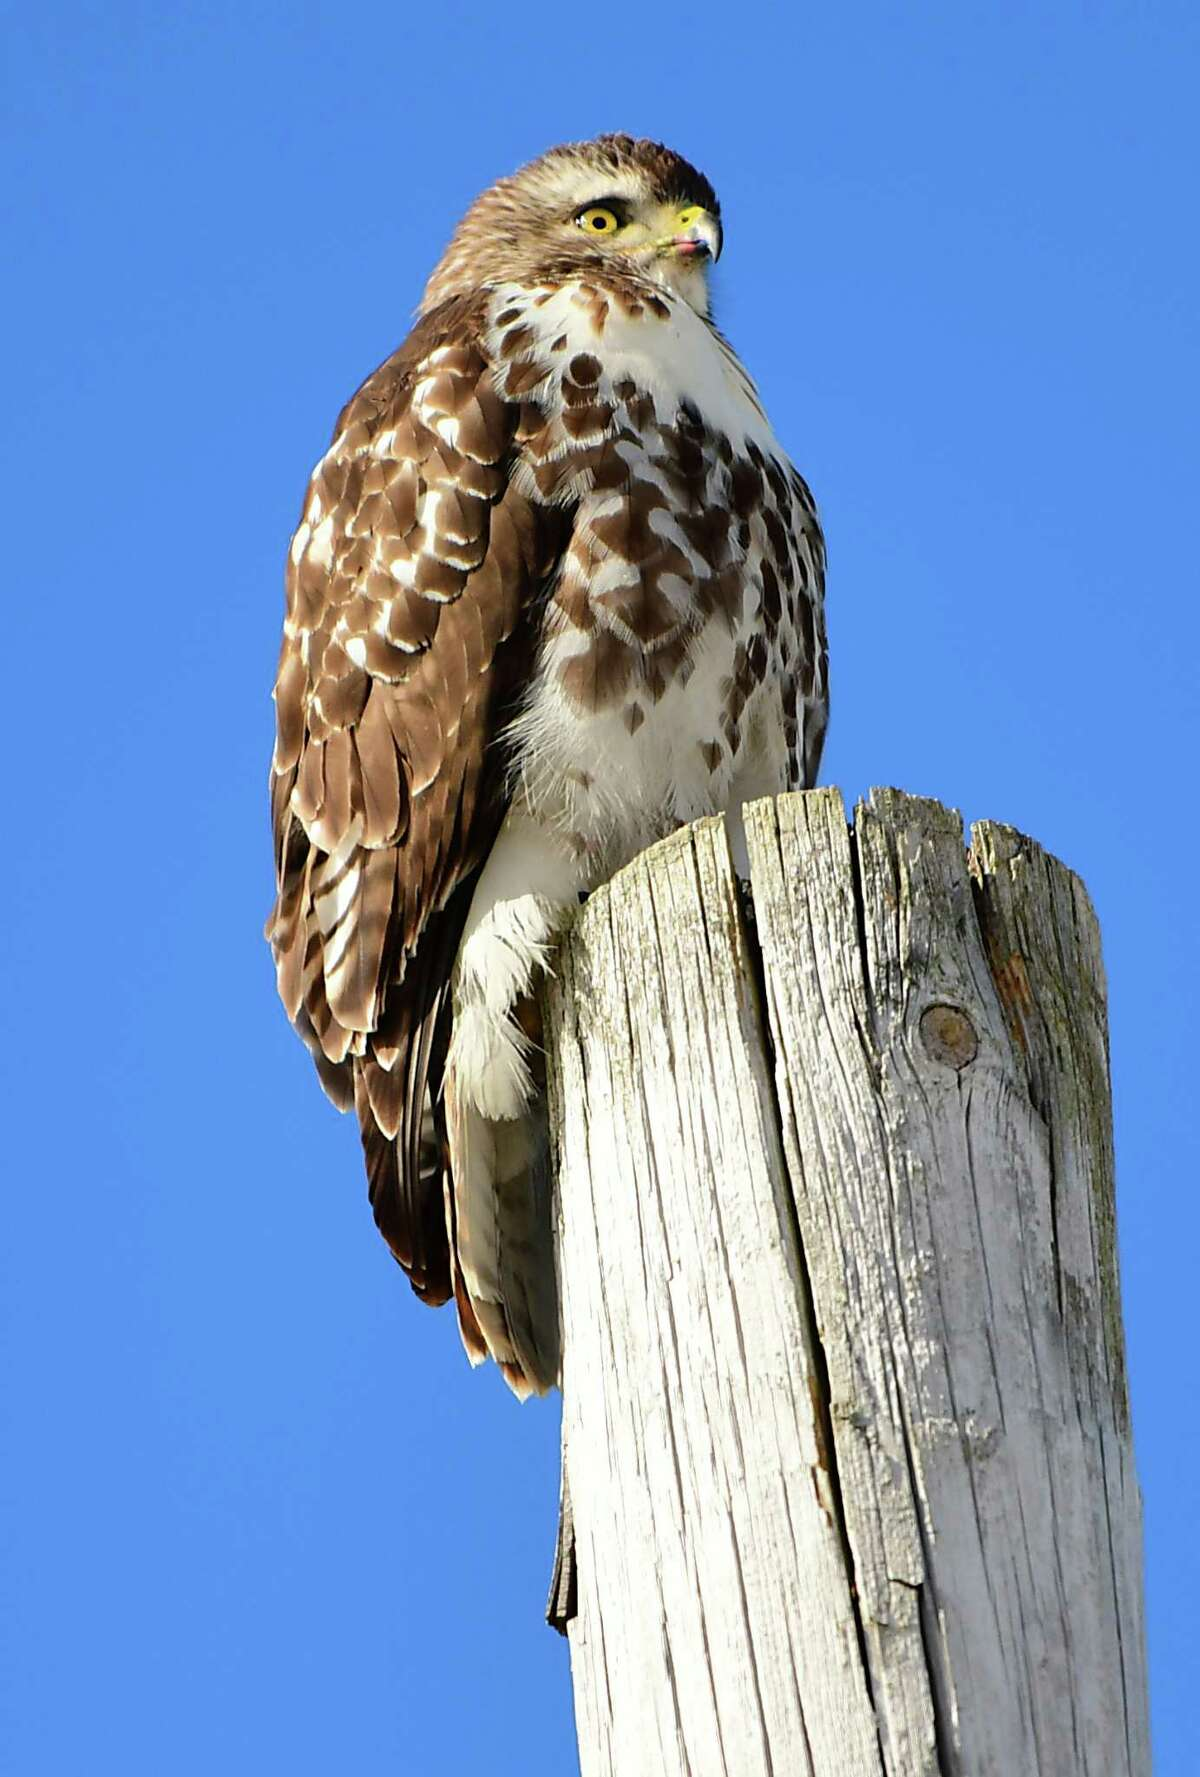 A hawk looks for food from the top of a utility pole on Wednesday, March 6, 2019 in Glenmont, N.Y. (Lori Van Buren/Times Union)